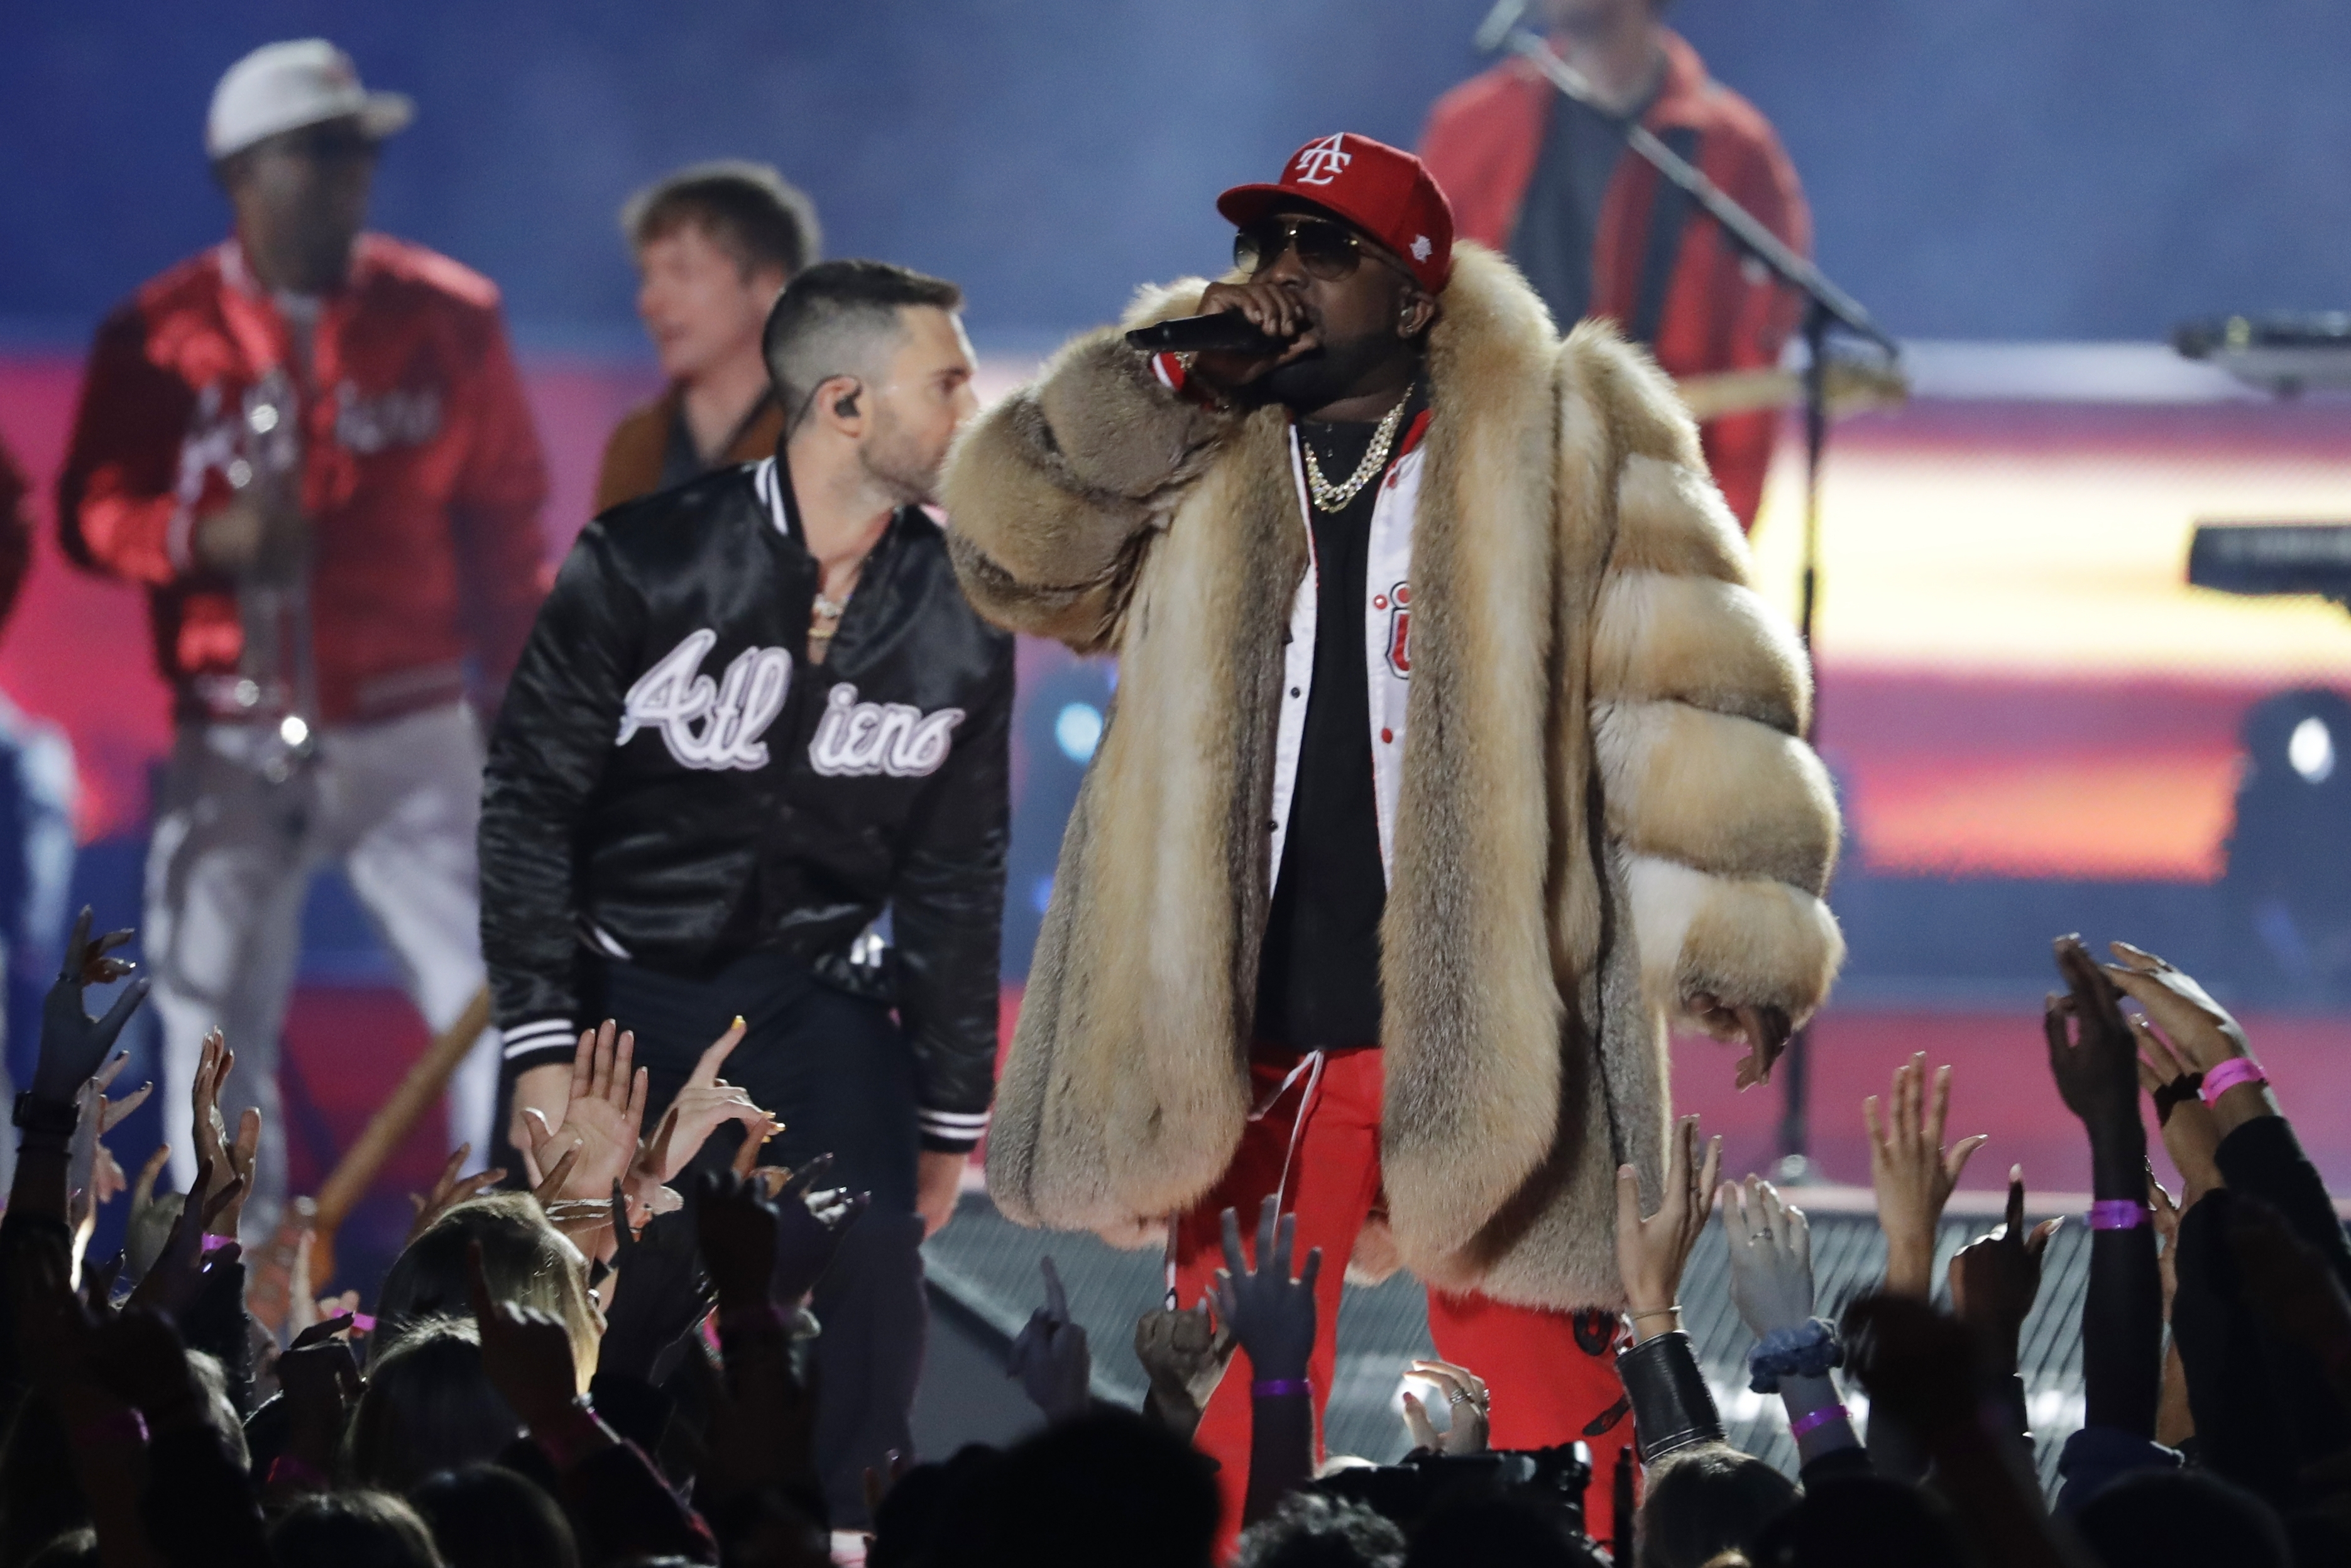 "<div class=""meta image-caption""><div class=""origin-logo origin-image ap""><span>AP</span></div><span class=""caption-text"">Big Boi performs during halftime of the NFL Super Bowl 53 football game between the Los Angeles Rams and the New England Patriots Sunday, Feb. 3, 2019, in Atlanta. (AP Photo/Jeff Roberson))</span></div>"